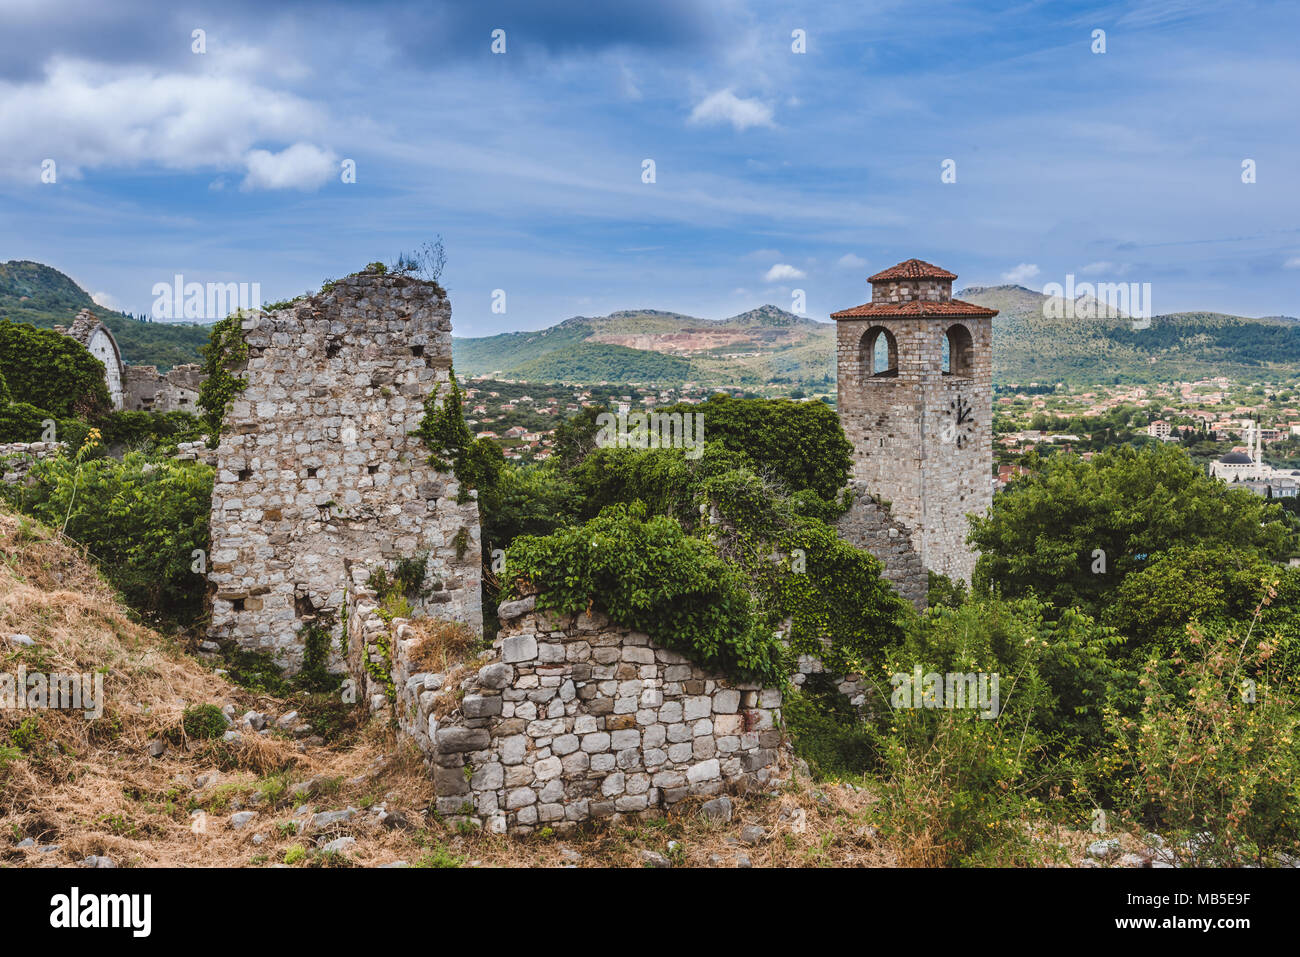 Old Bar Ruined Town in Montenegro - Stock Image